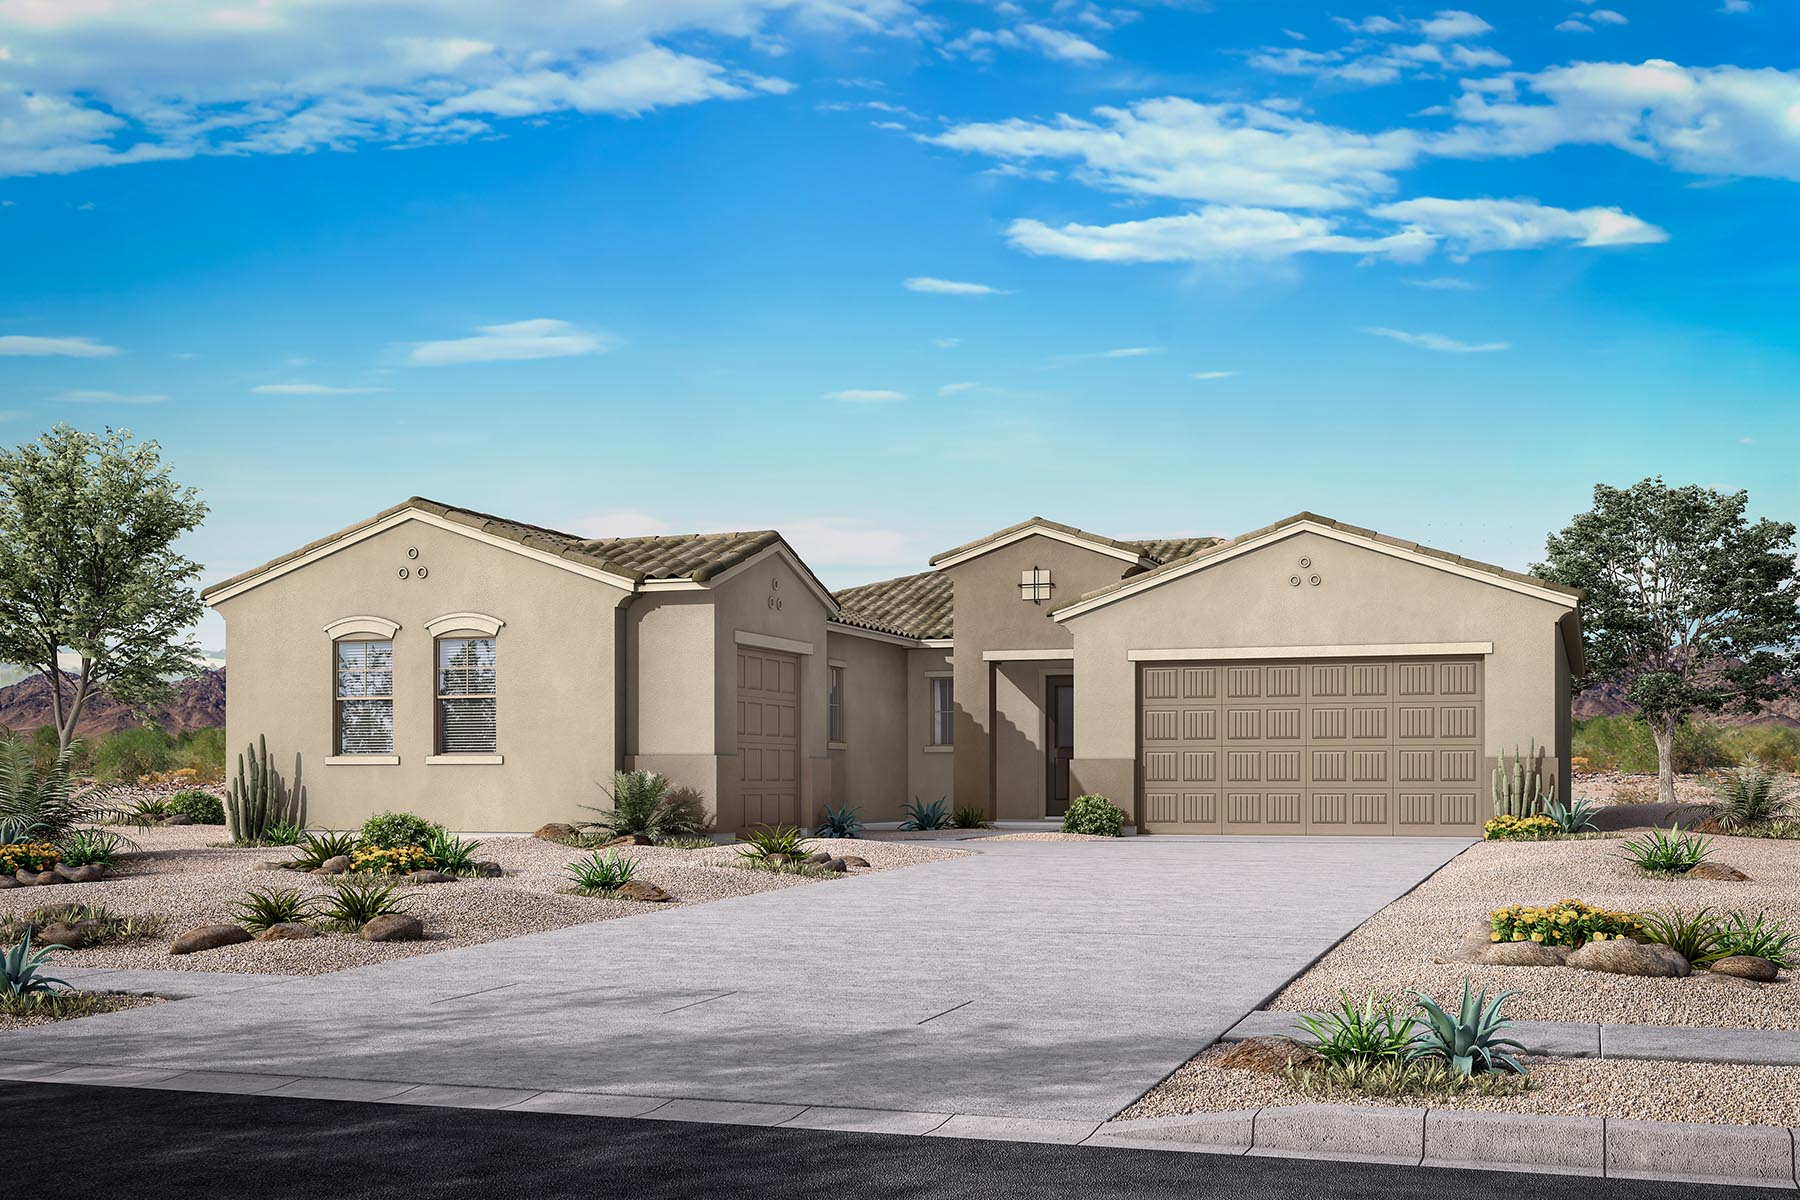 Beaumont Plan PHX_AzureCanyon_Beaumont_Spanish at Azure Canyon in Litchfield Park Arizona by Mattamy Homes